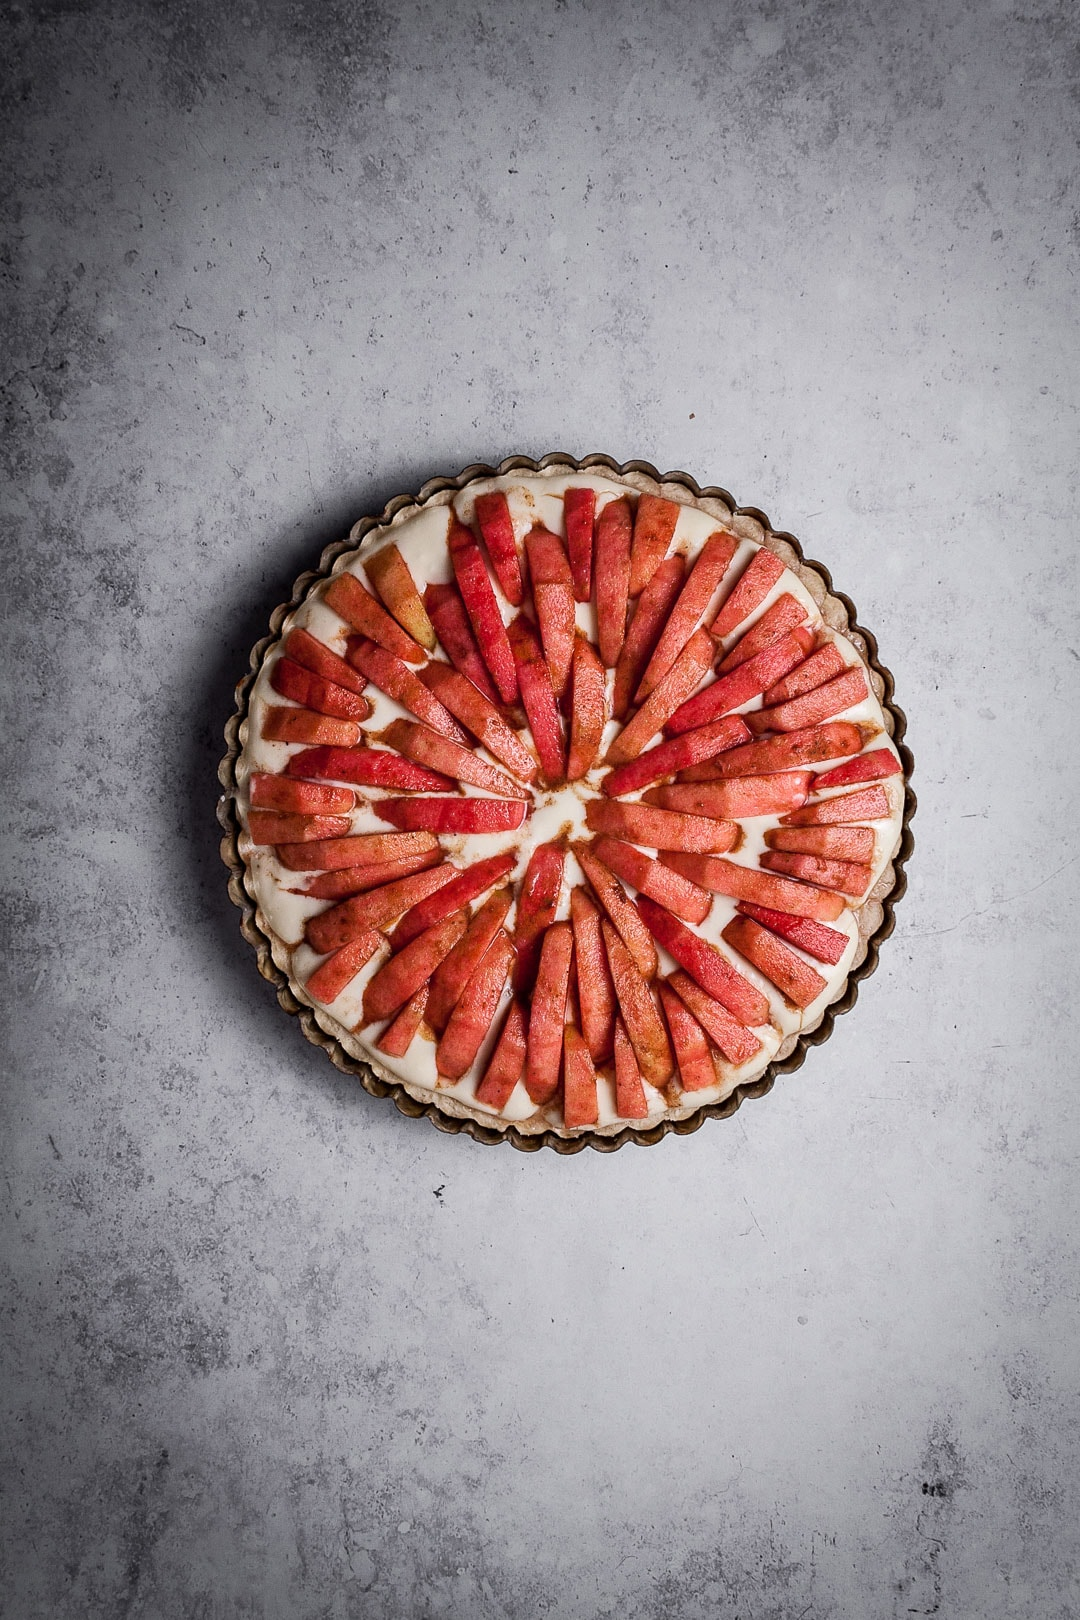 Pink Apple Tart with Cream Cheese Filling on a grey background - prior to baking